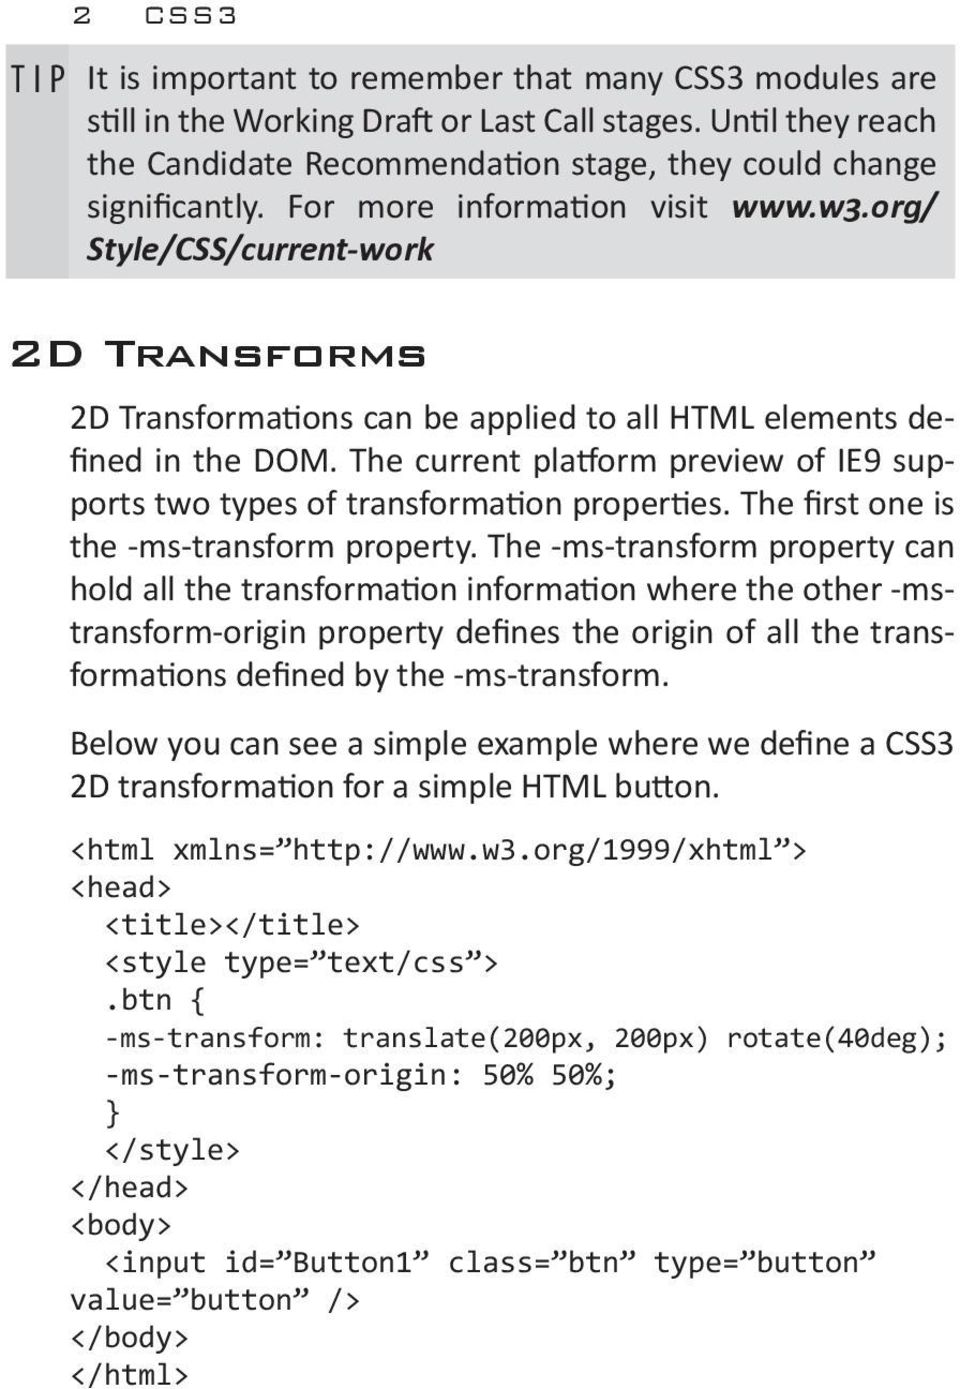 The current platform preview of IE9 supports two types of transformation properties. The first one is the -ms-transform property.